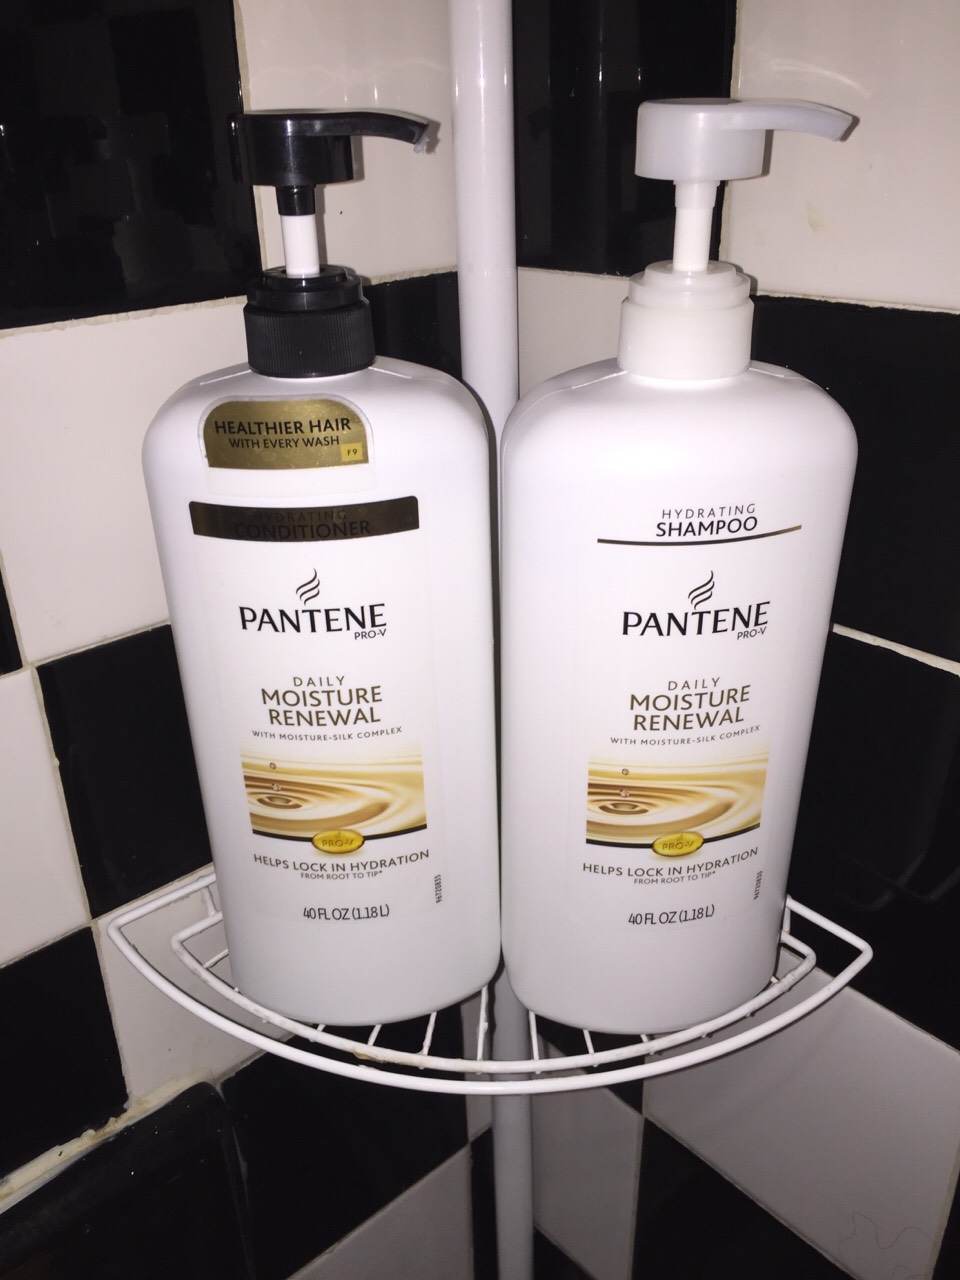 If you were wondering, this is the shampoo and conditioner I use.